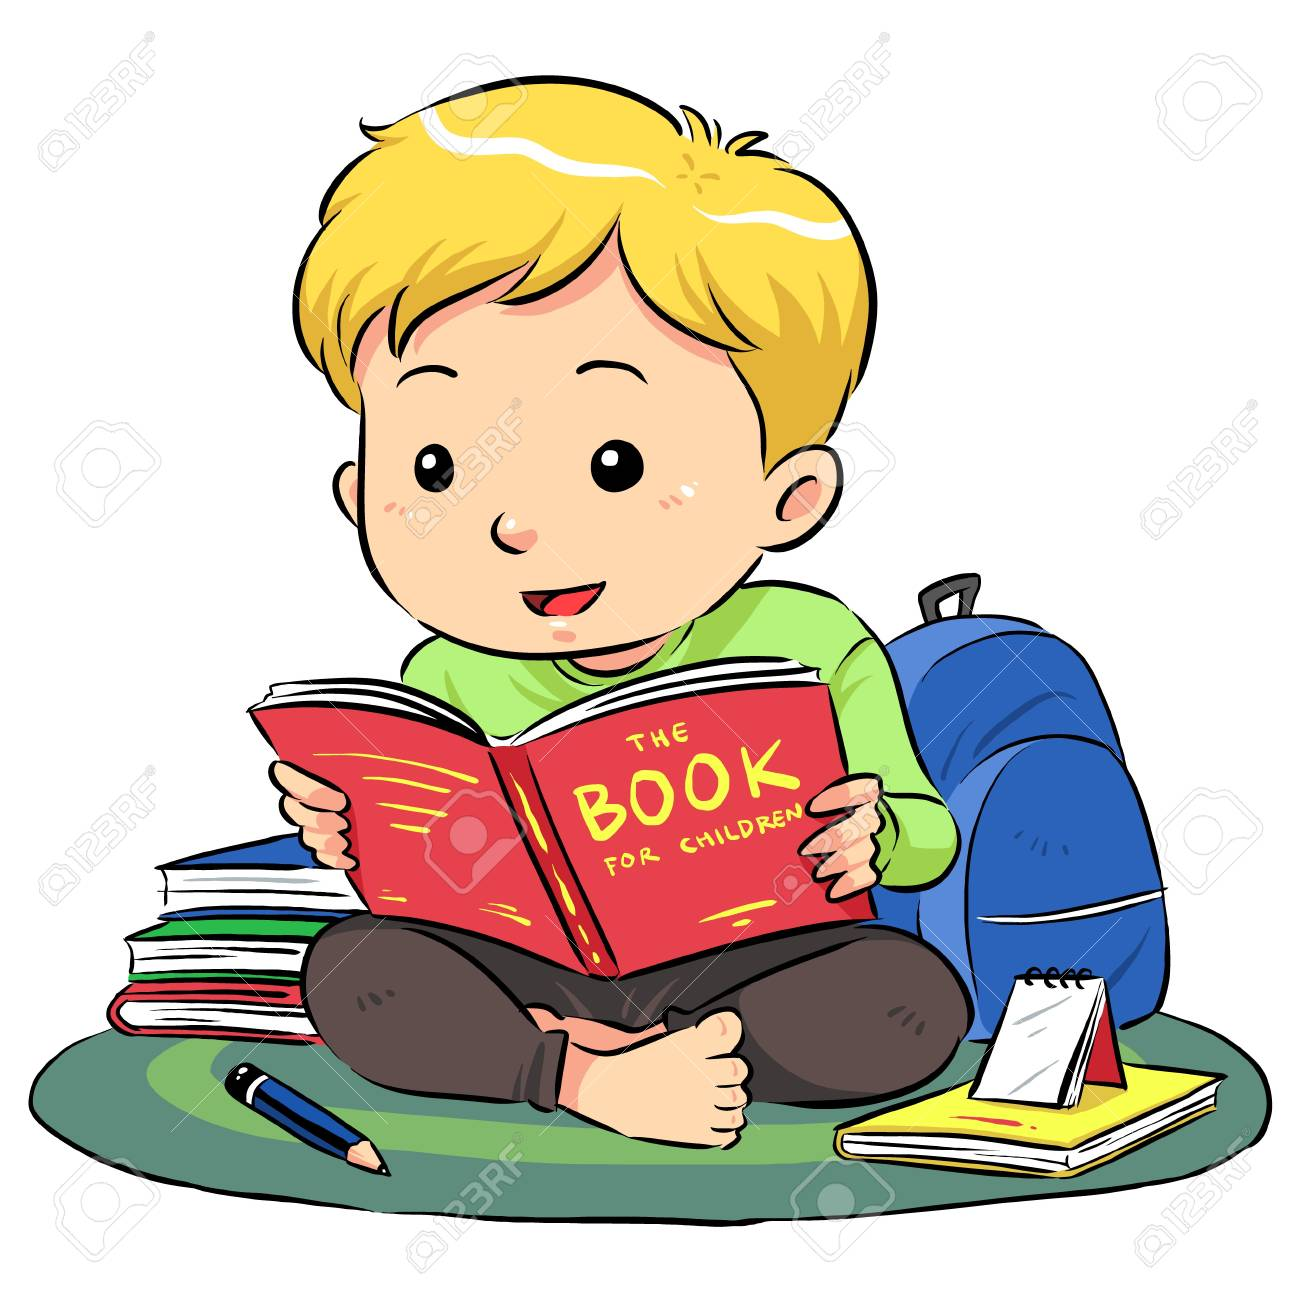 Reading A Book  A boy sitting and reading a book Stock Vector - 19257657